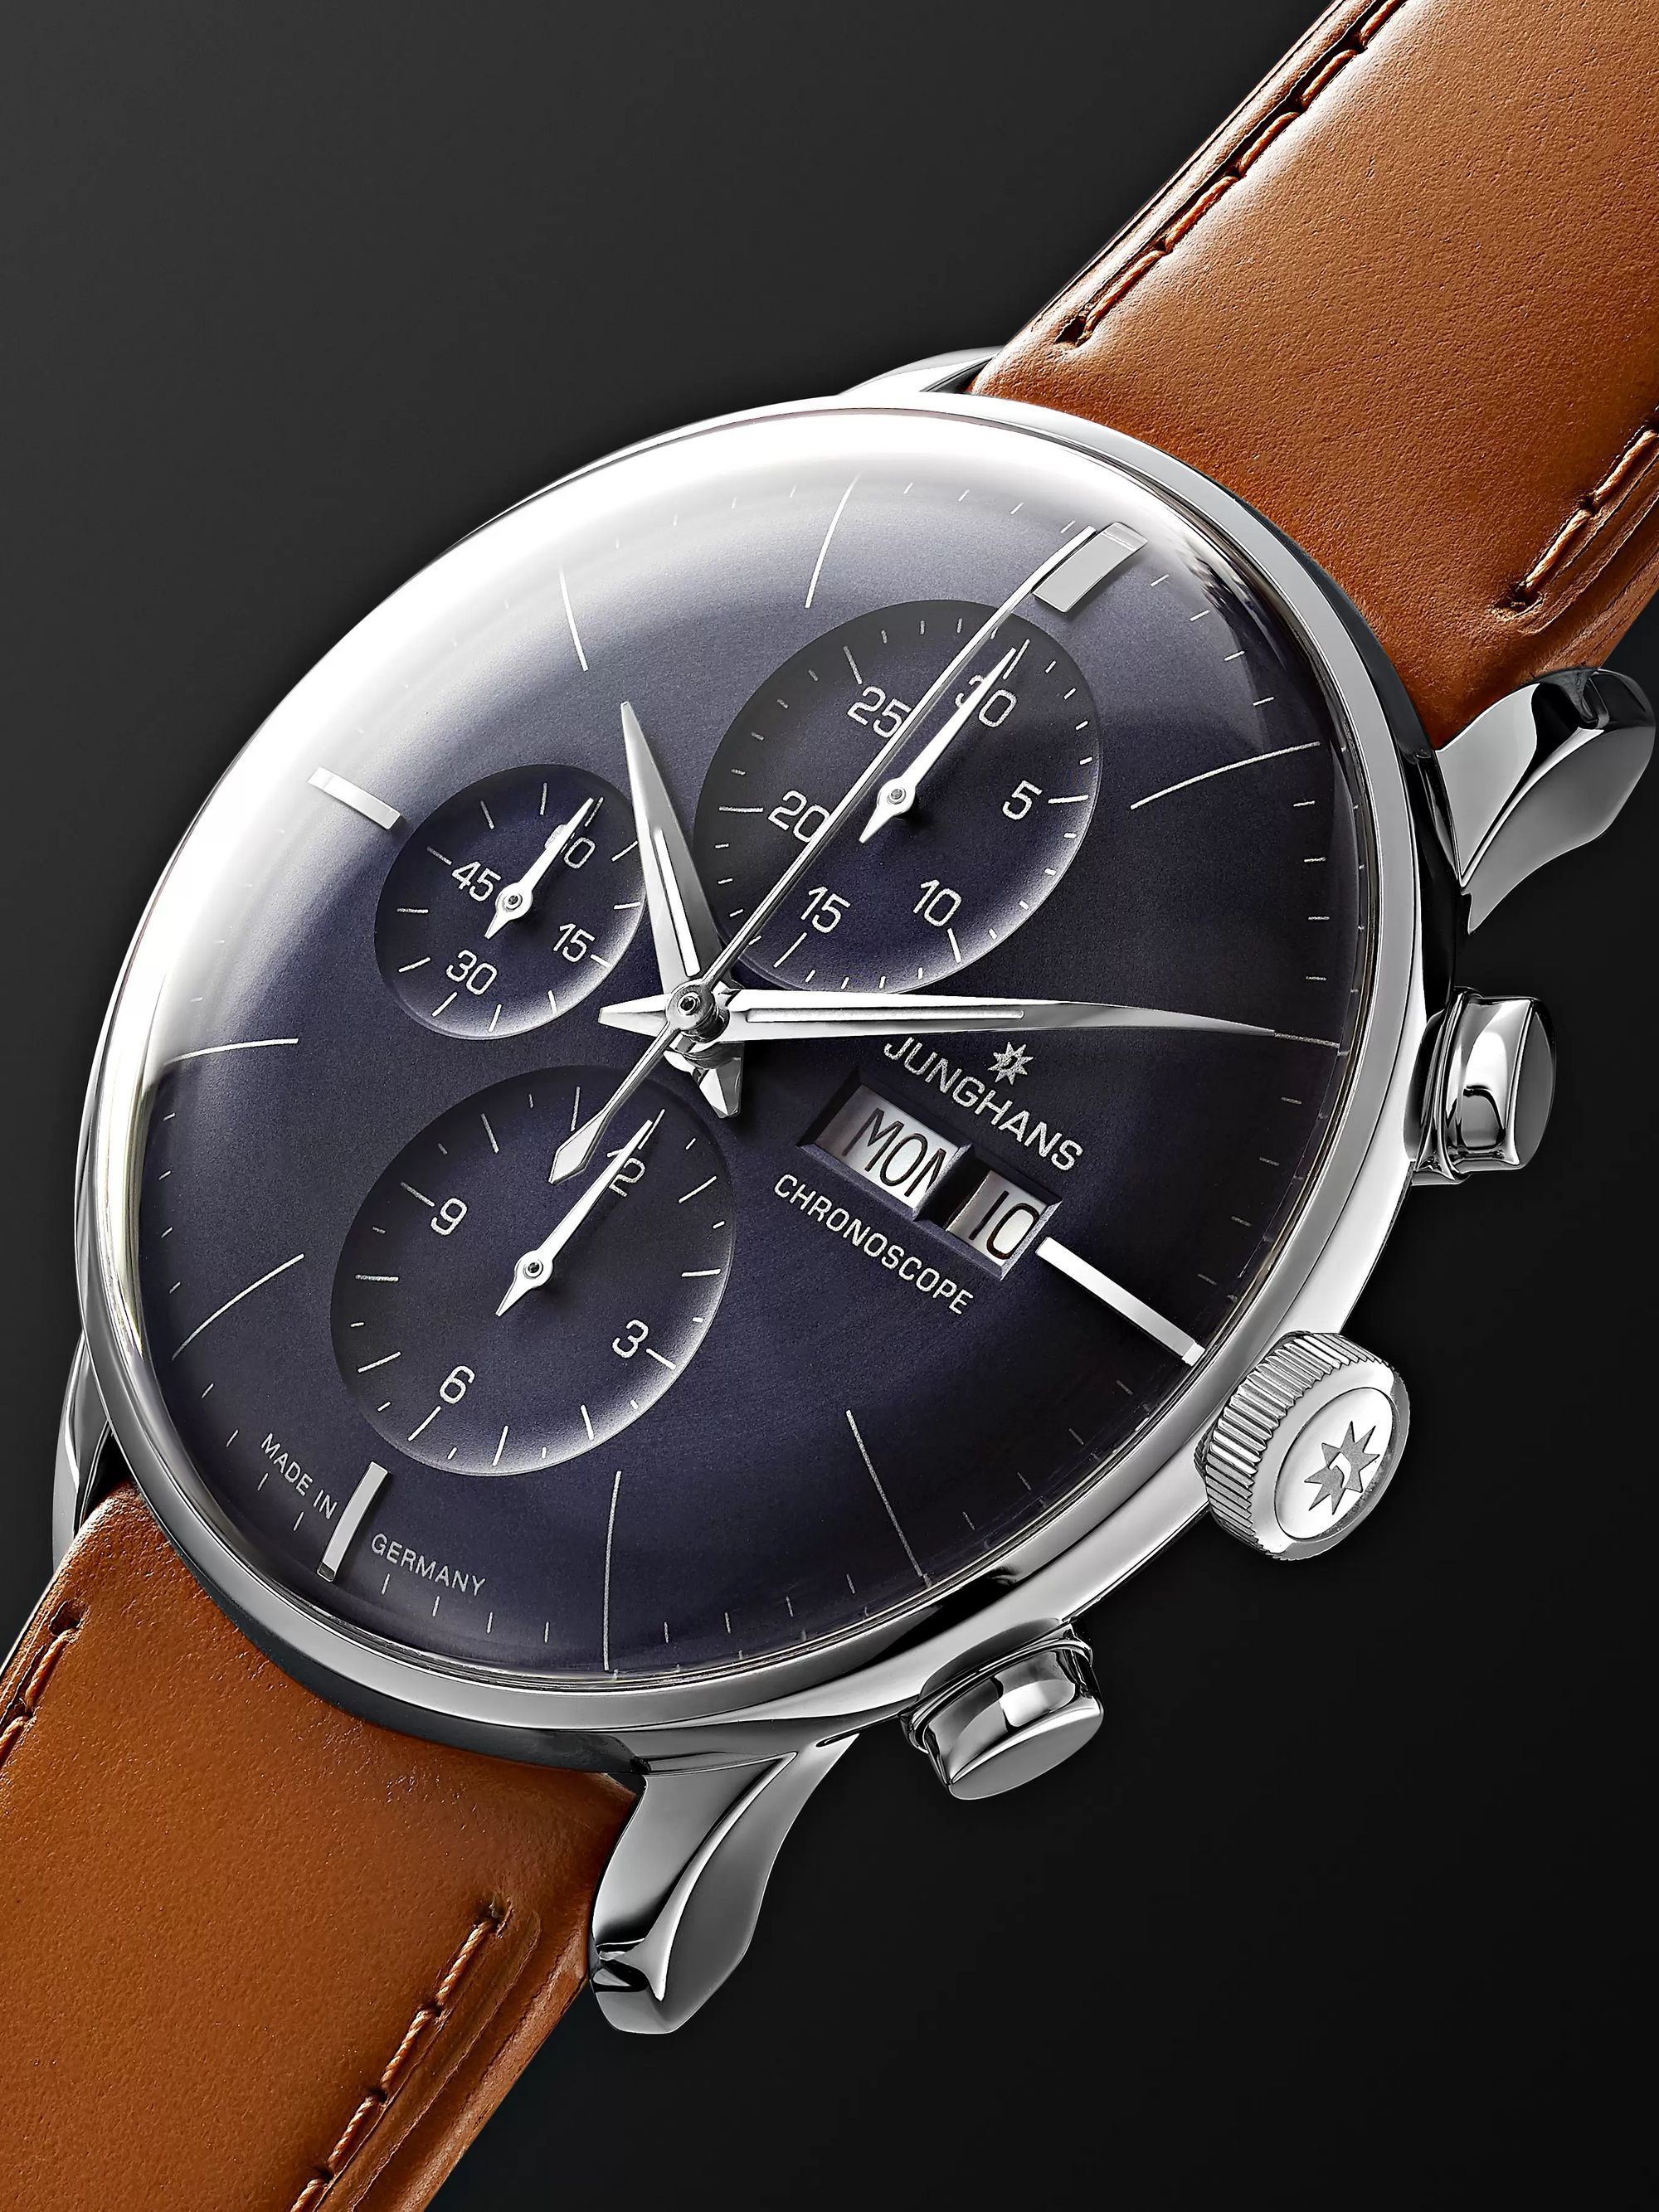 JUNGHANS Meister Automatic Chronoscope 40mm Stainless Steel and Leather Watch, Ref. No. 027/4526.01